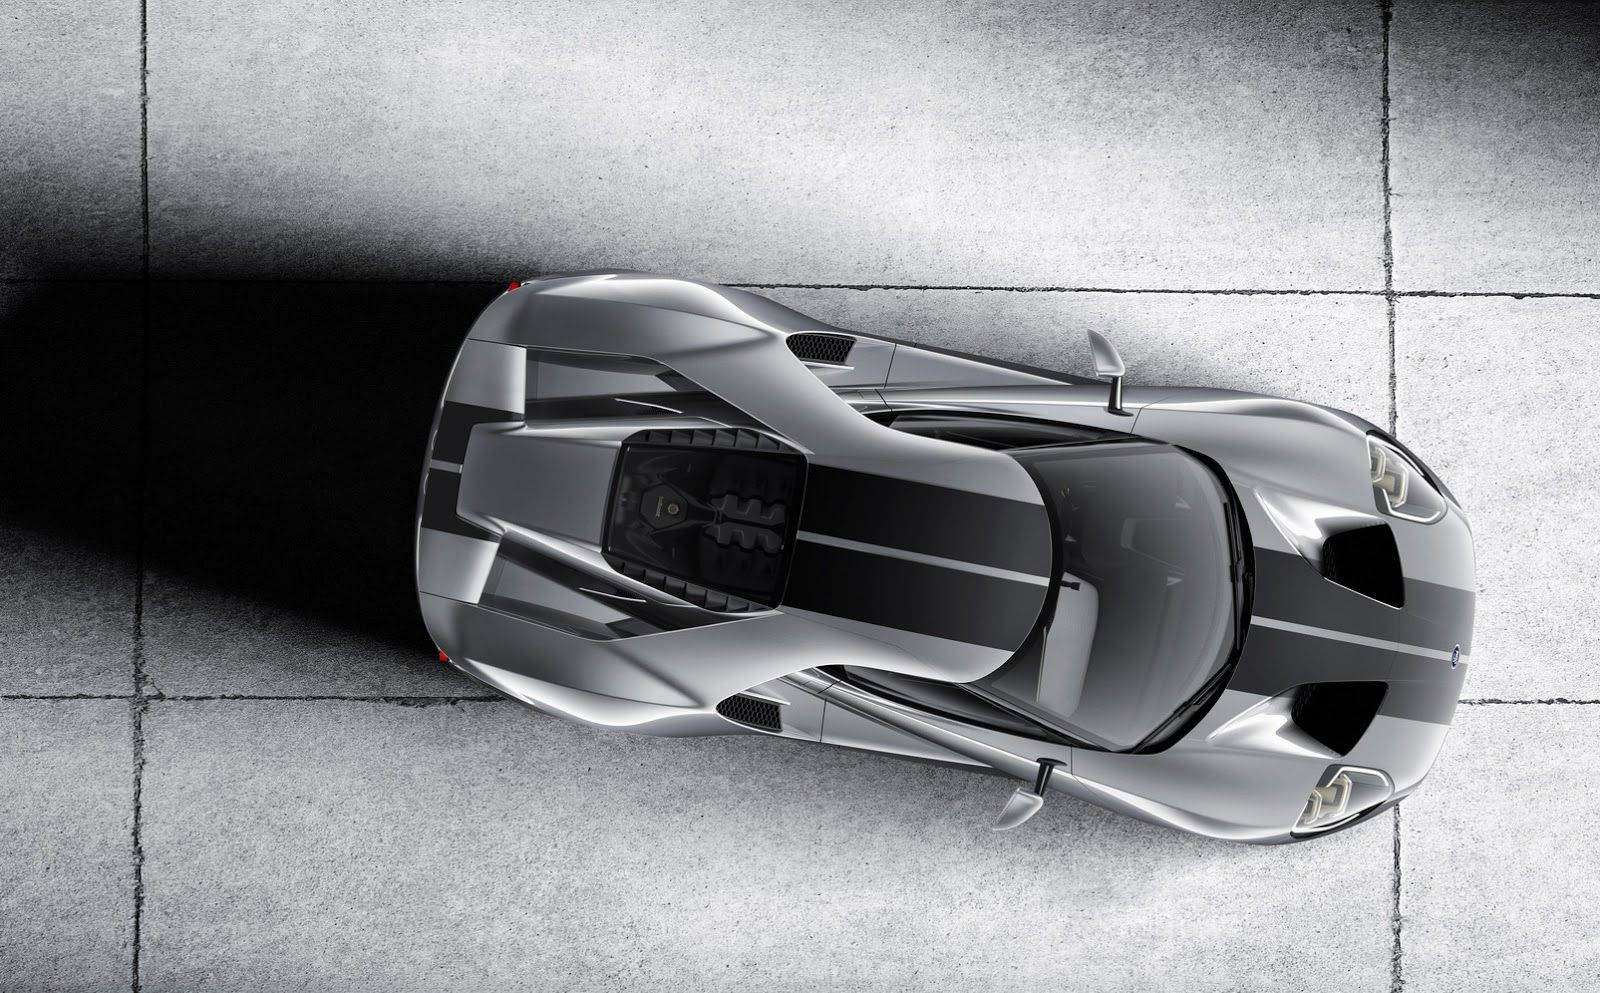 Fords  Gt Supercar Is Making Its Second Appearance On Us Soil At This Weeks Chicago Auto Show With A New Color Twist